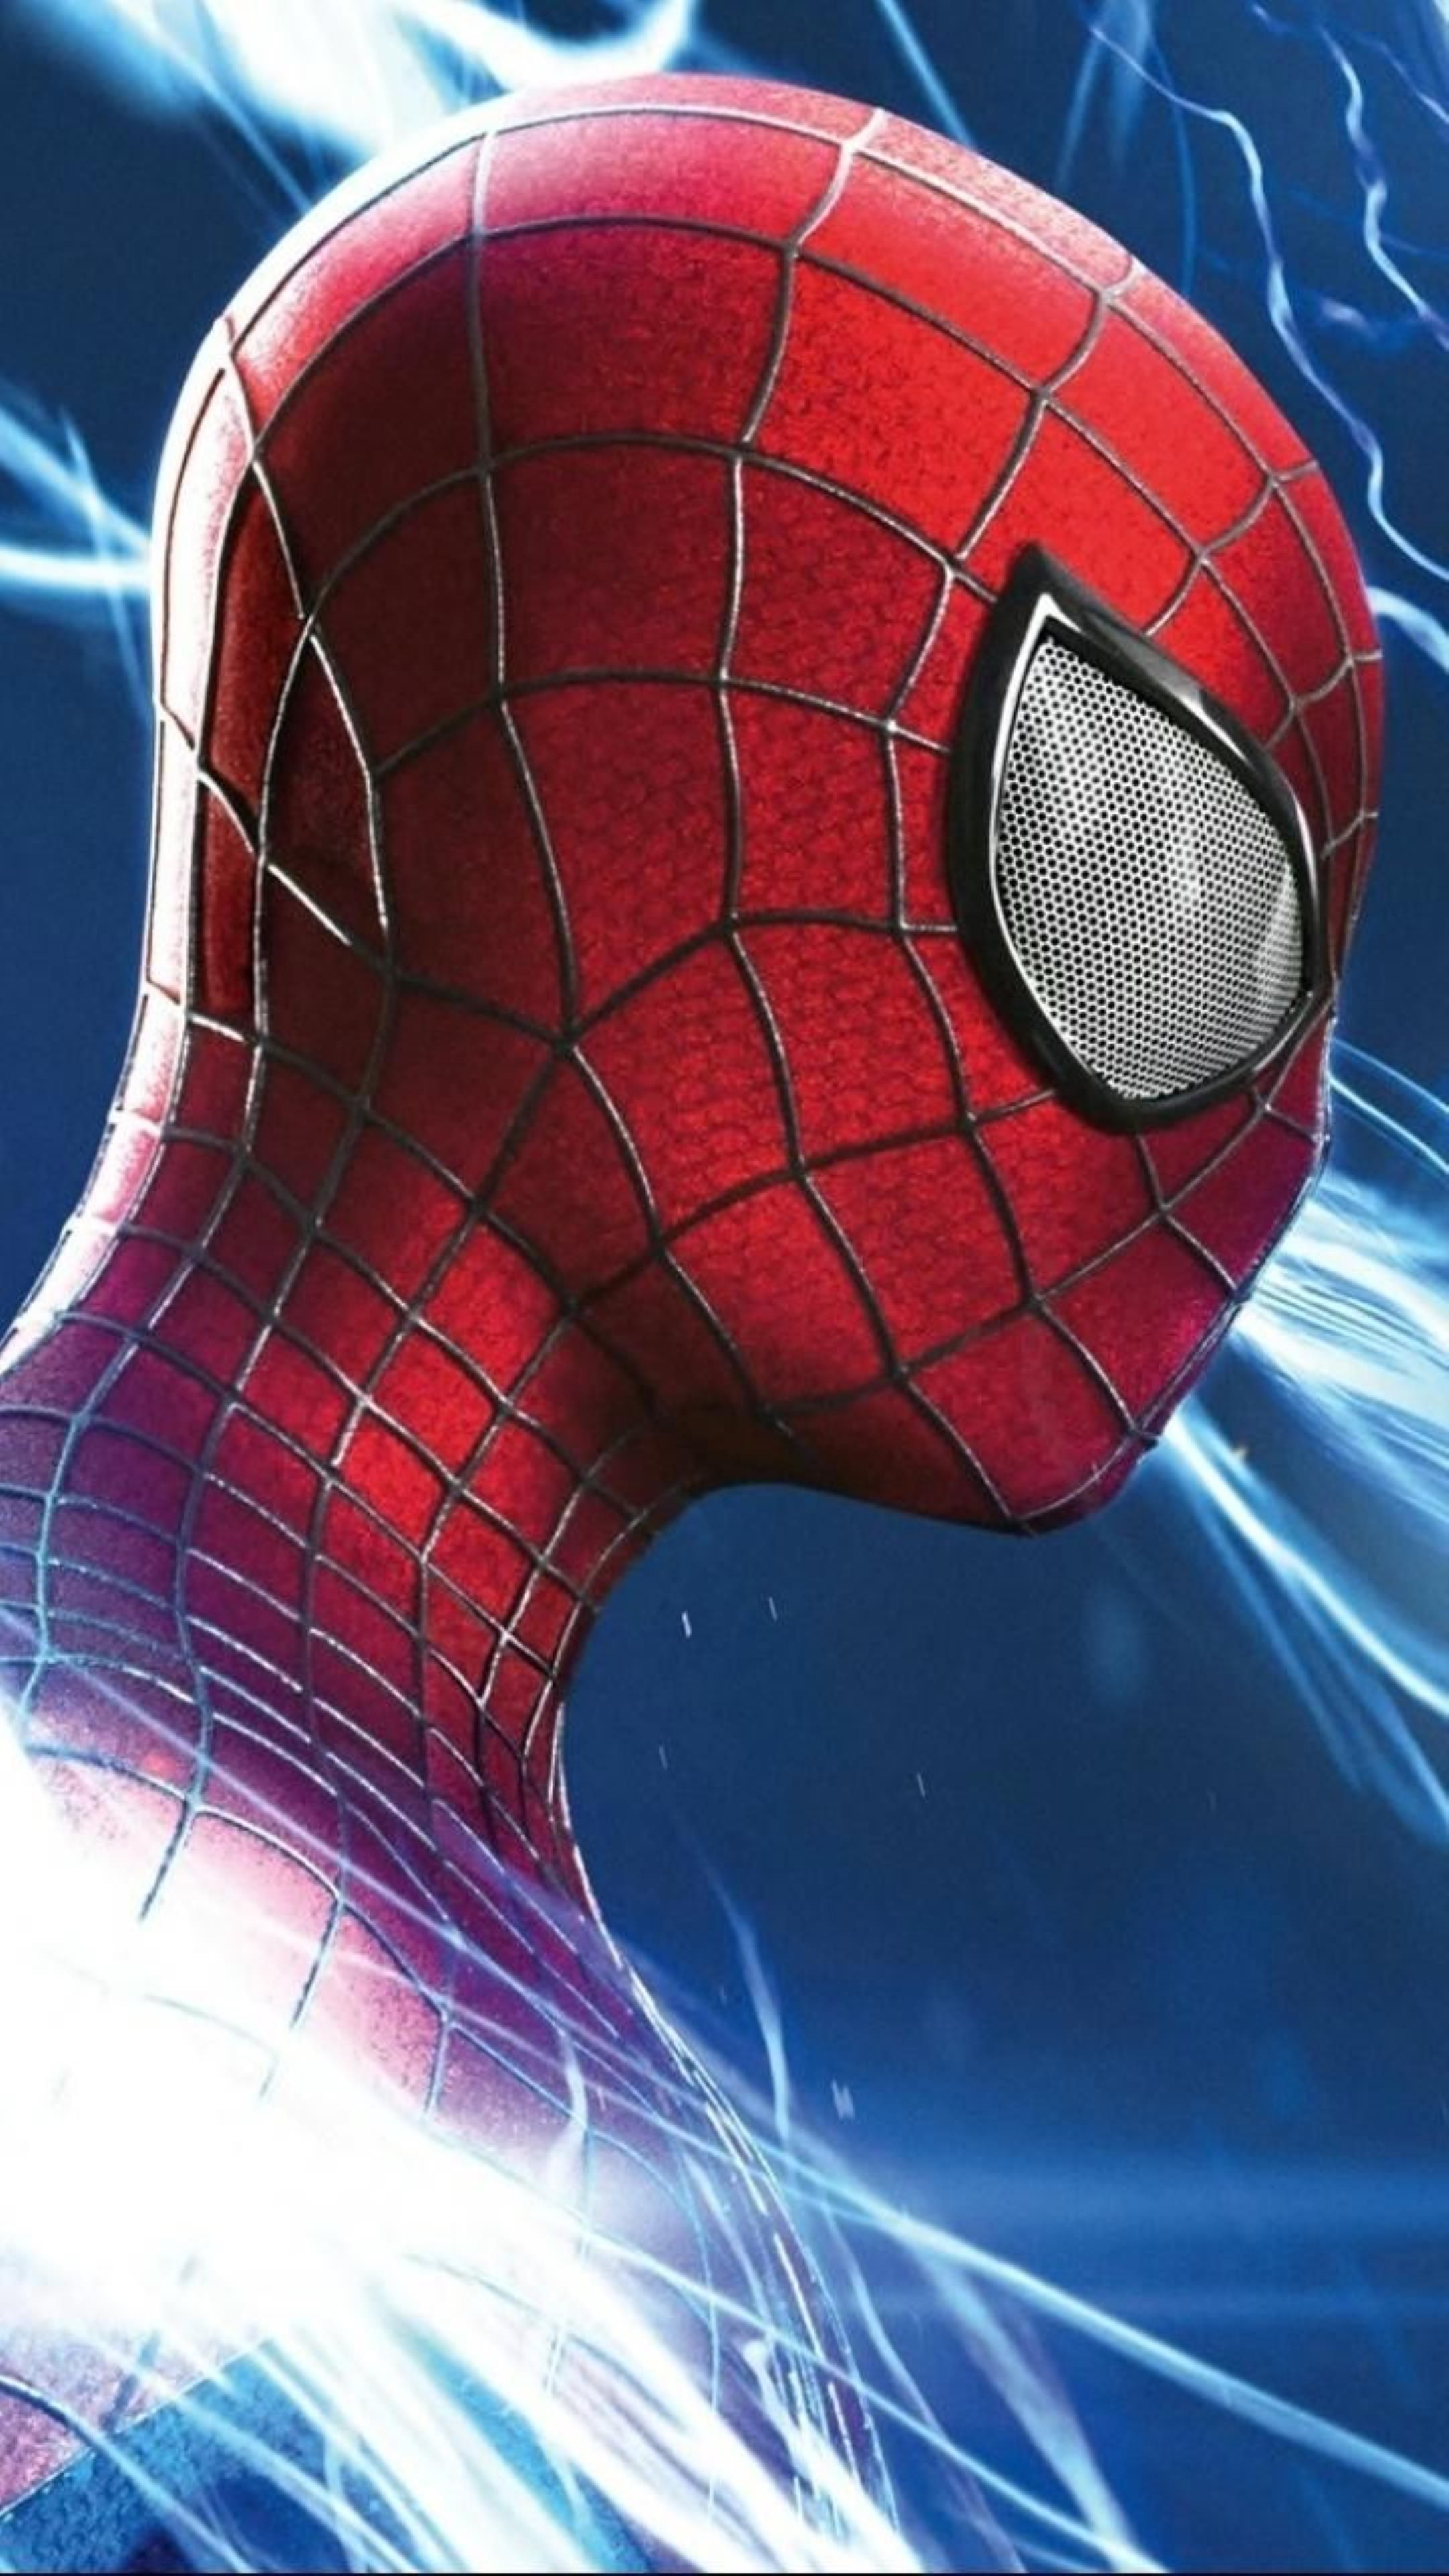 Spiderman Wallpaper 6 Wzory